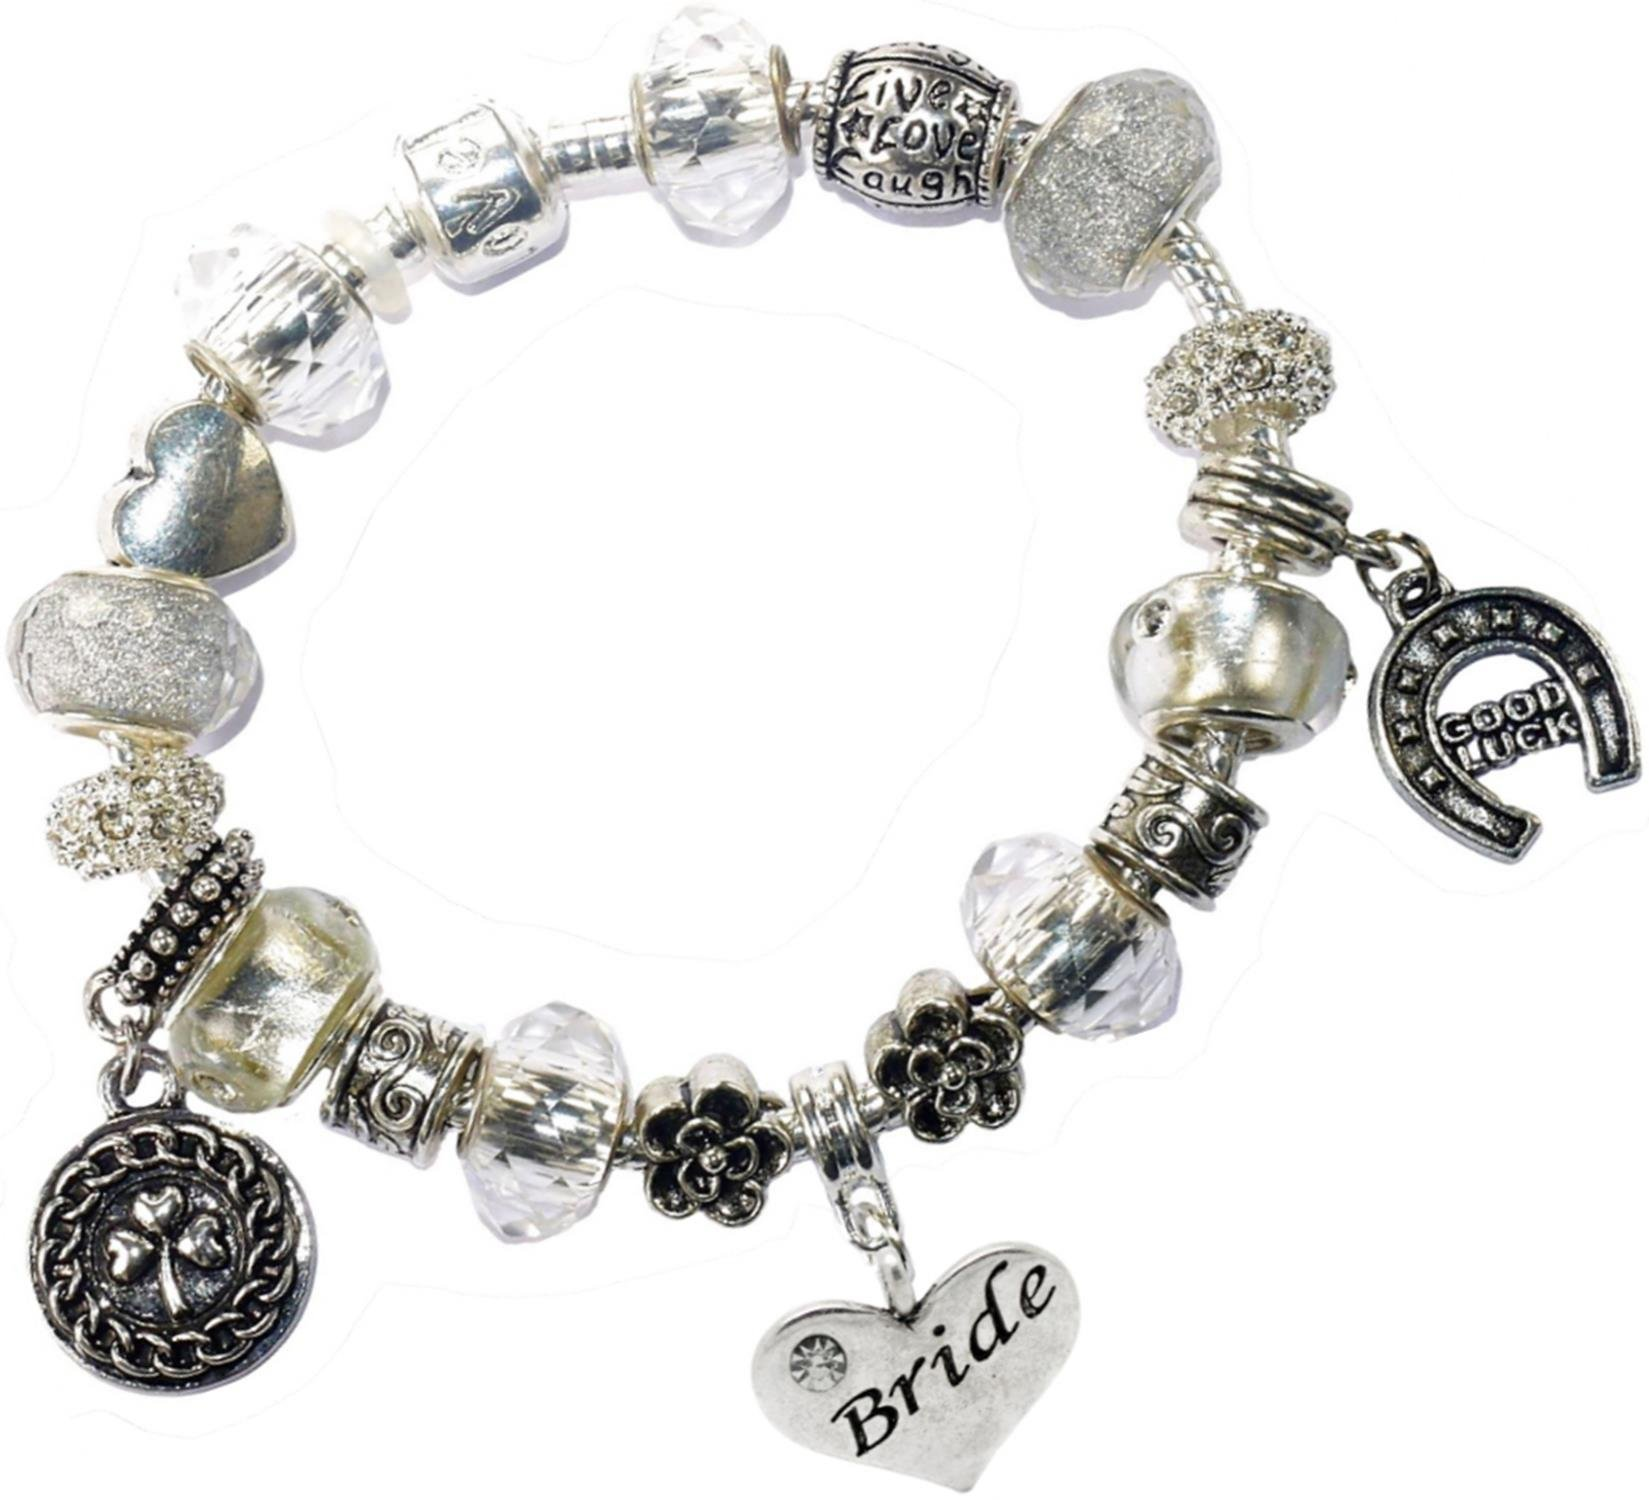 Bride Bridal Good Luck Lucky Something New Iced Silver Pandora Style Bracelet Charms Gift Box Wedding